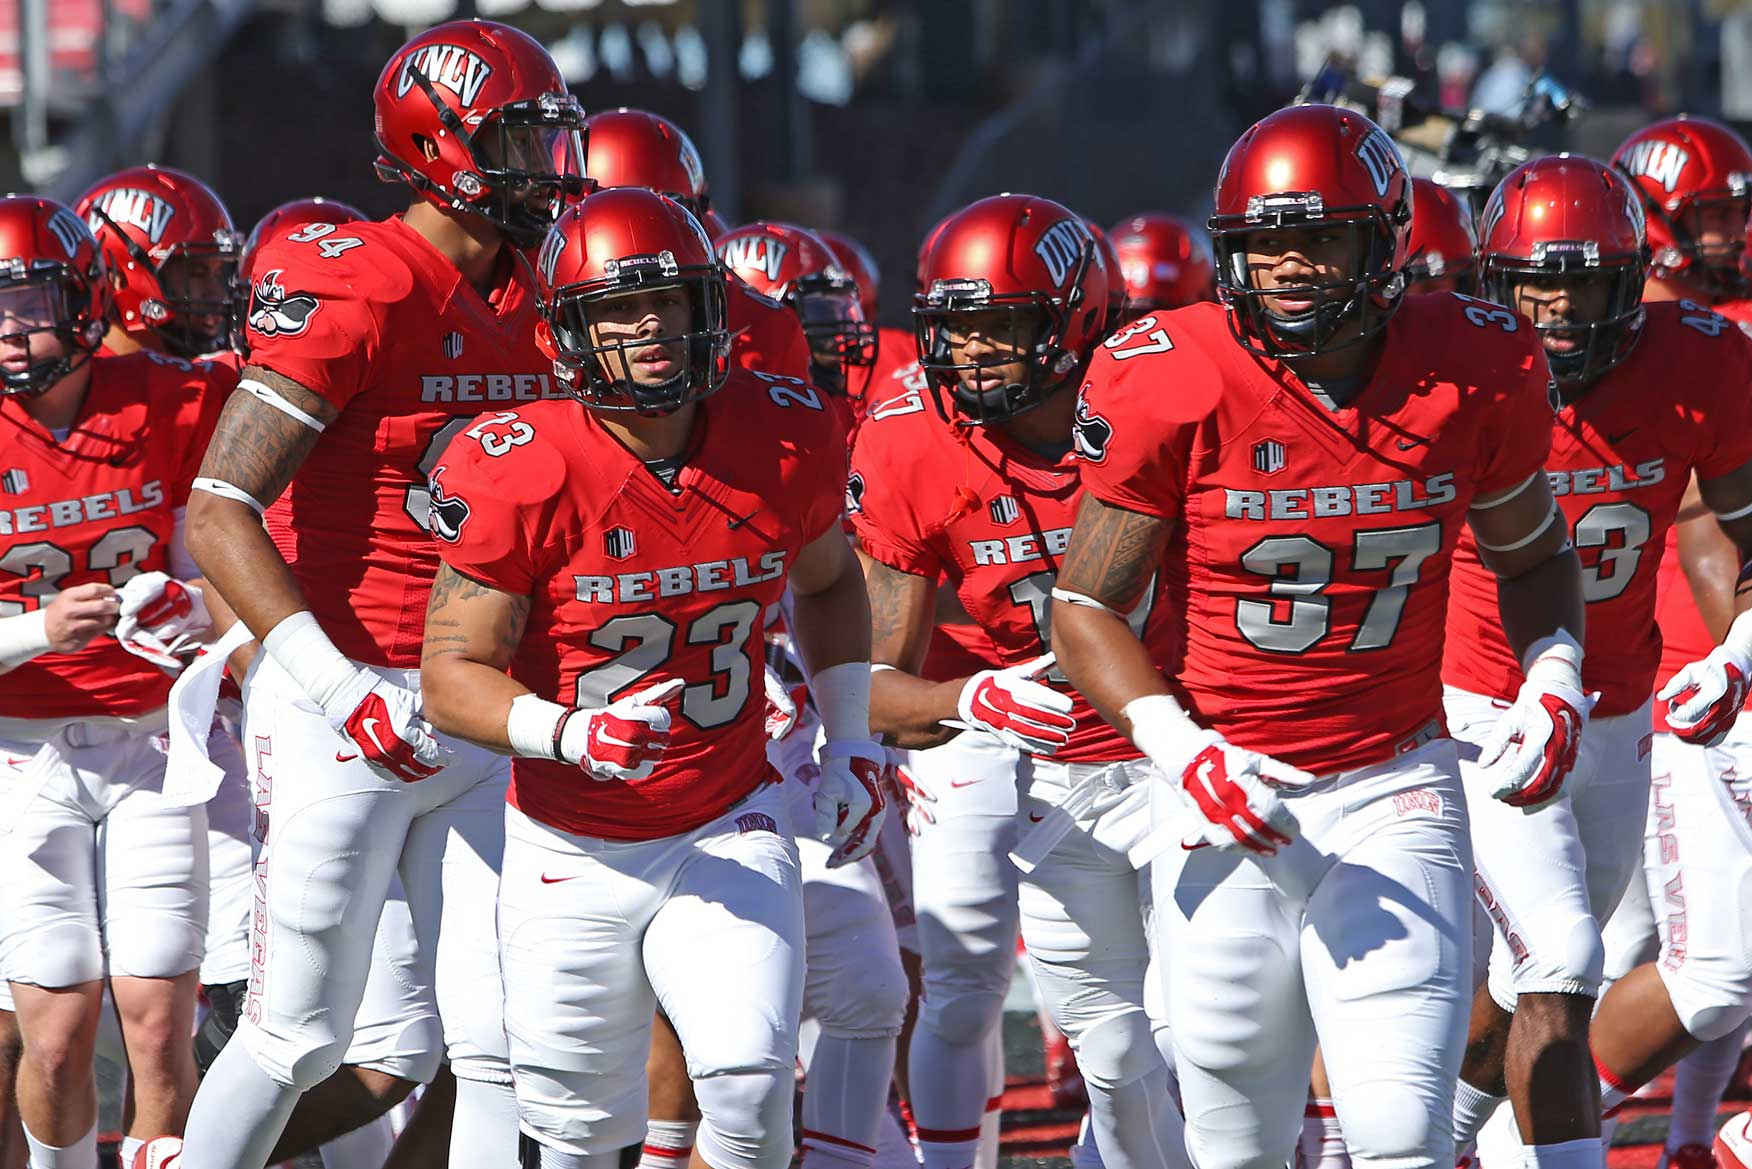 UNLV Football Review 2019